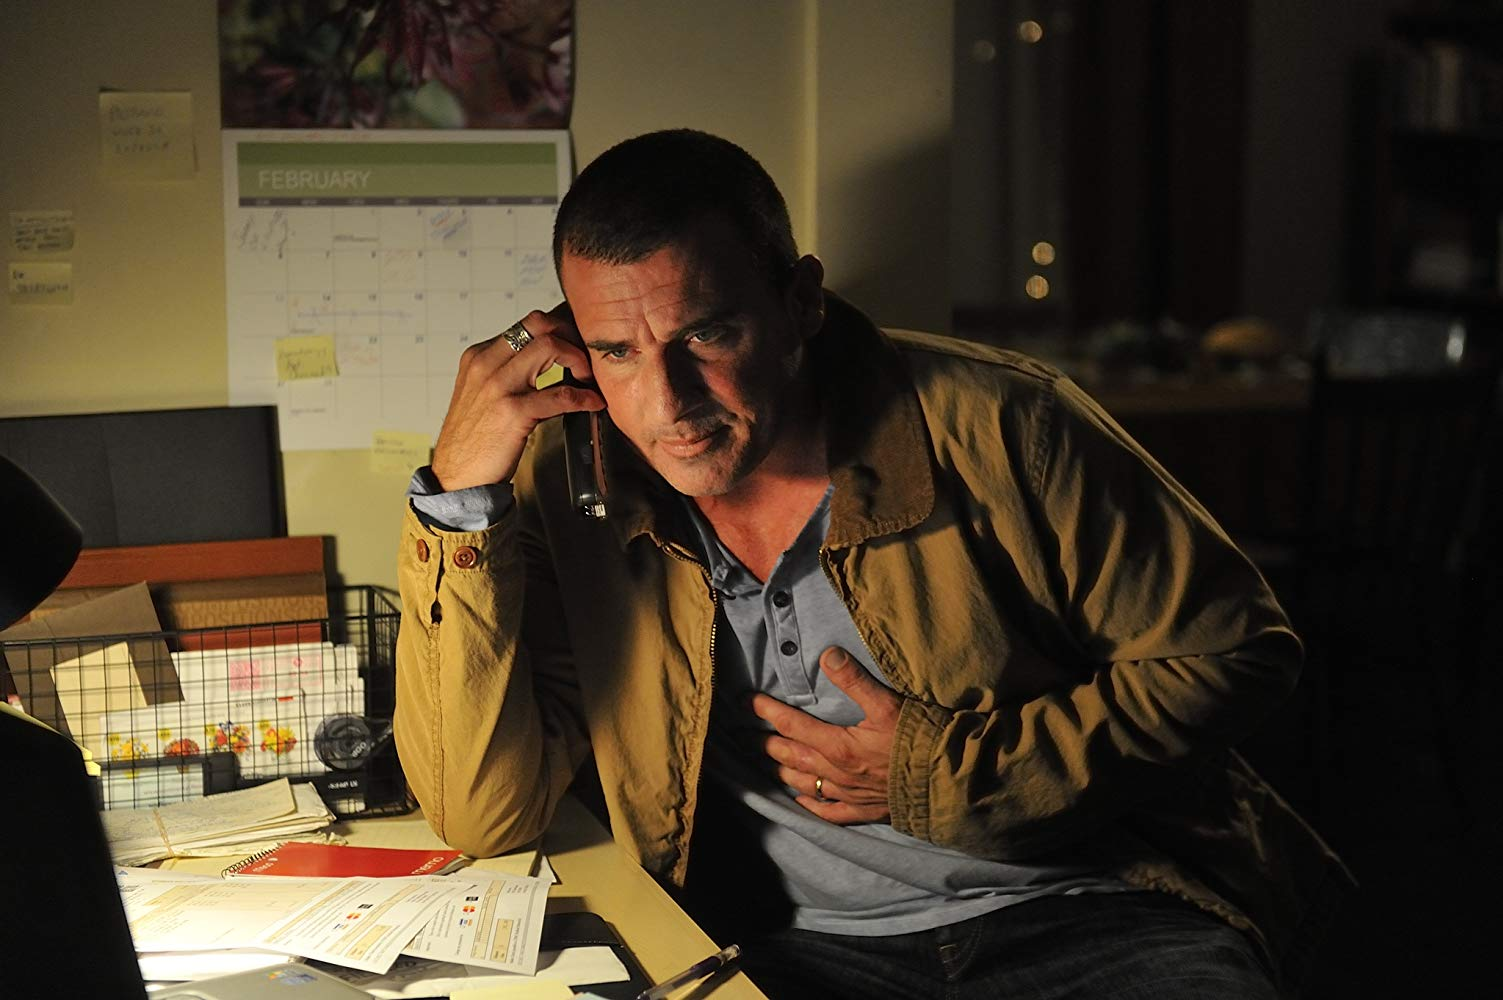 Dominic Purcell as a regular average guy struggling amidst the financial crisis in Assault on Wall Street (2013)